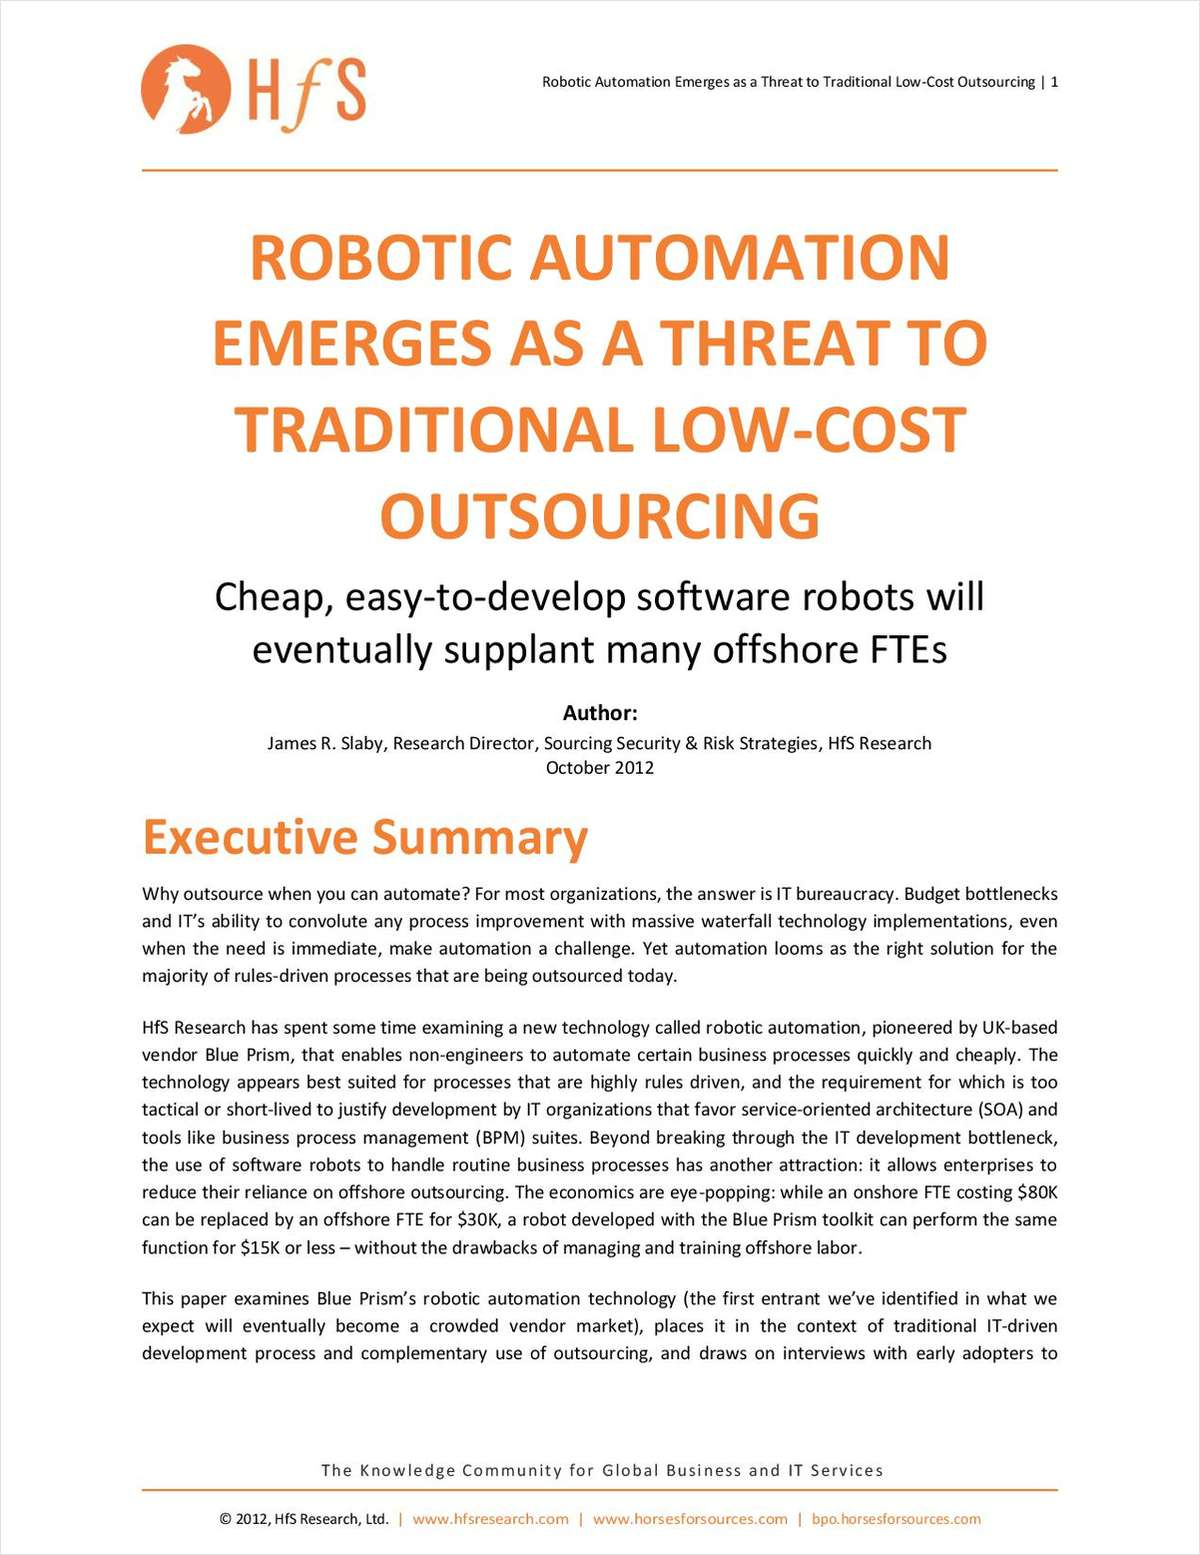 Robotic Automation Emerges as a Threat to Traditional Low-cost Outsourcing